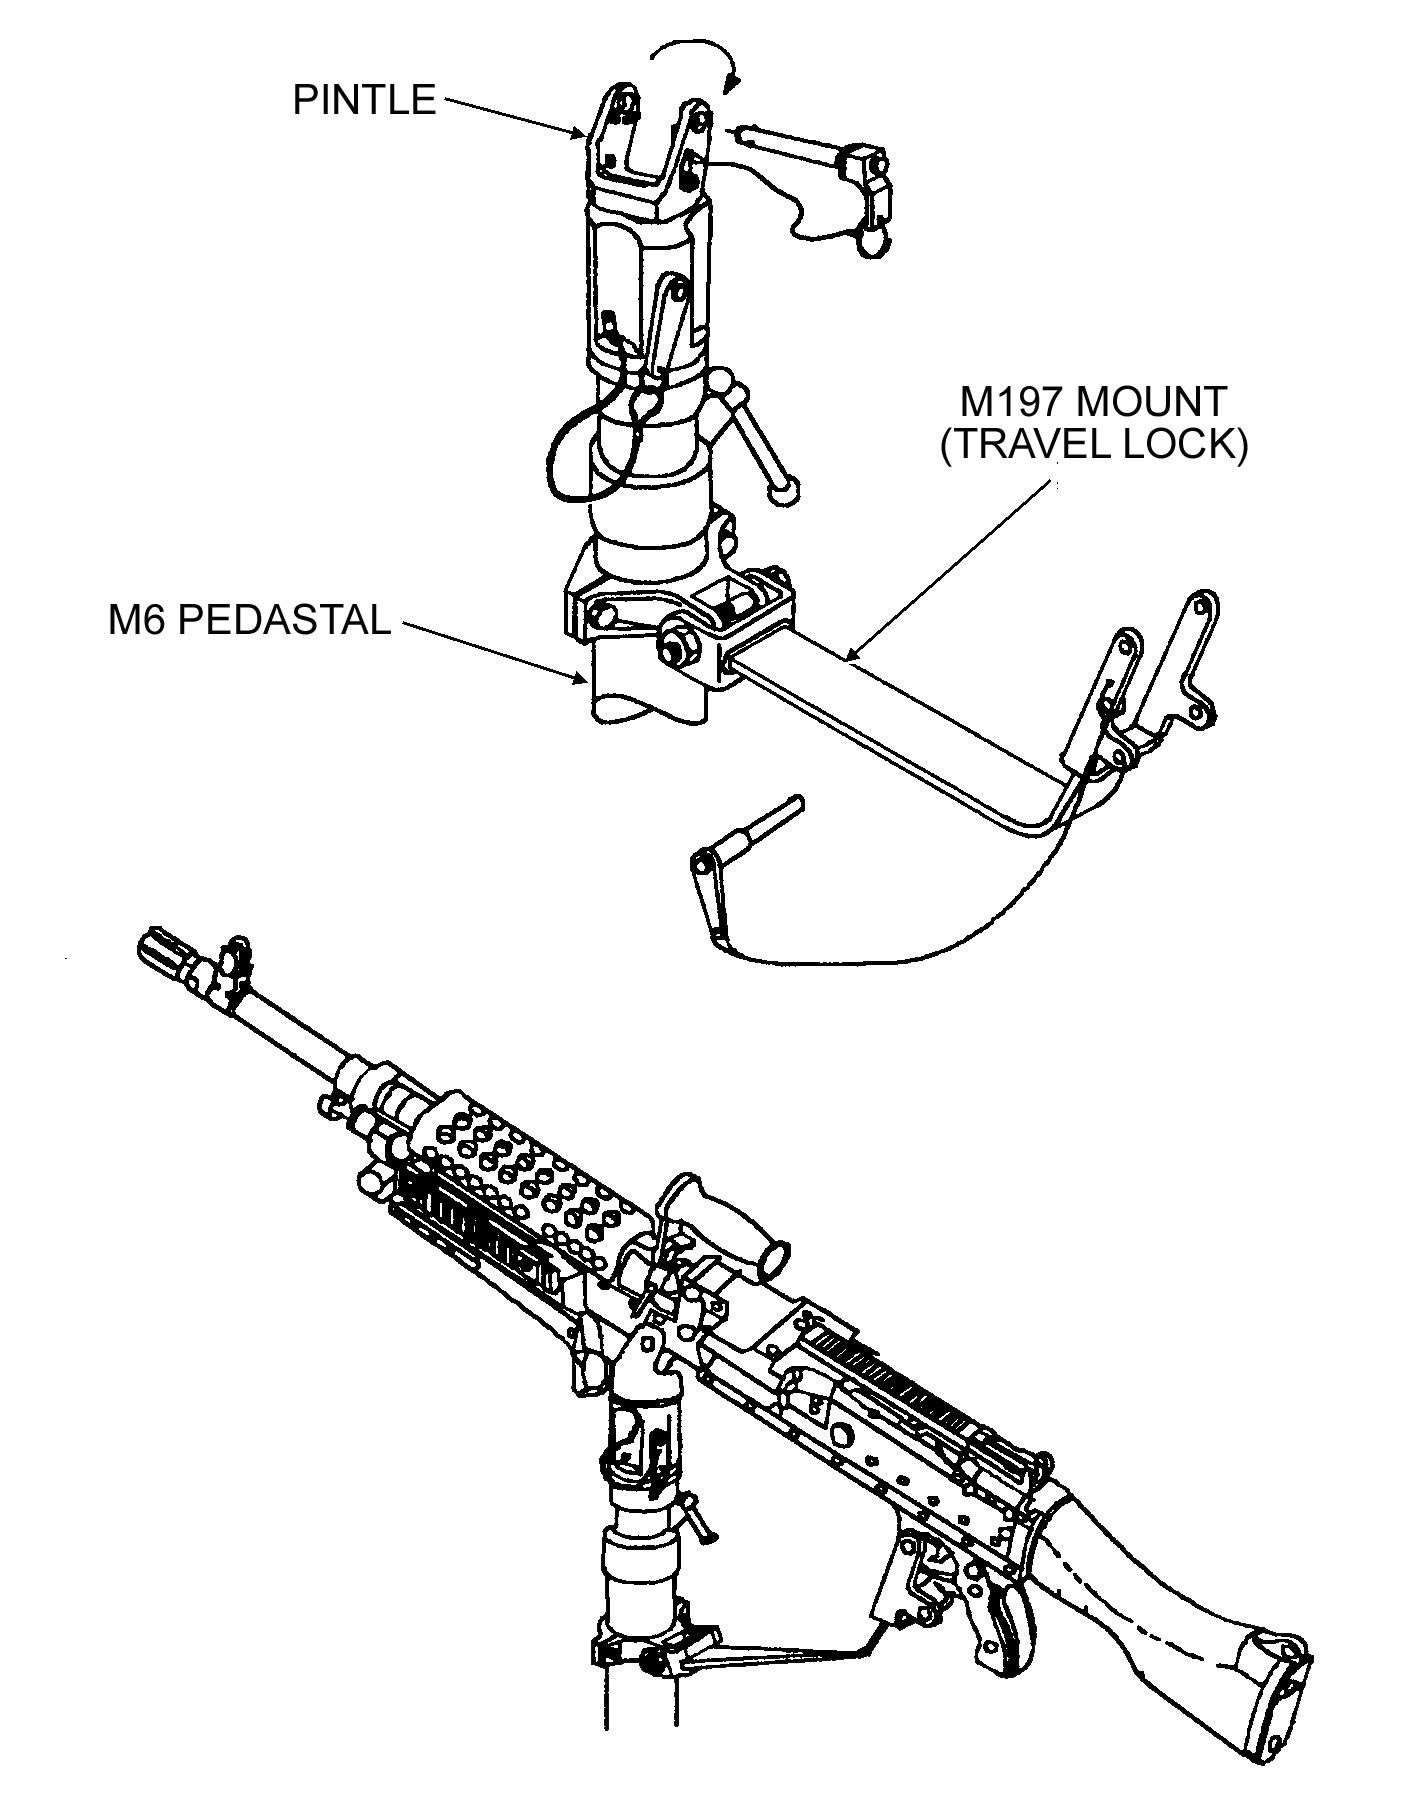 Fm3 22 68 Chapter 1 M249 Machine Gun